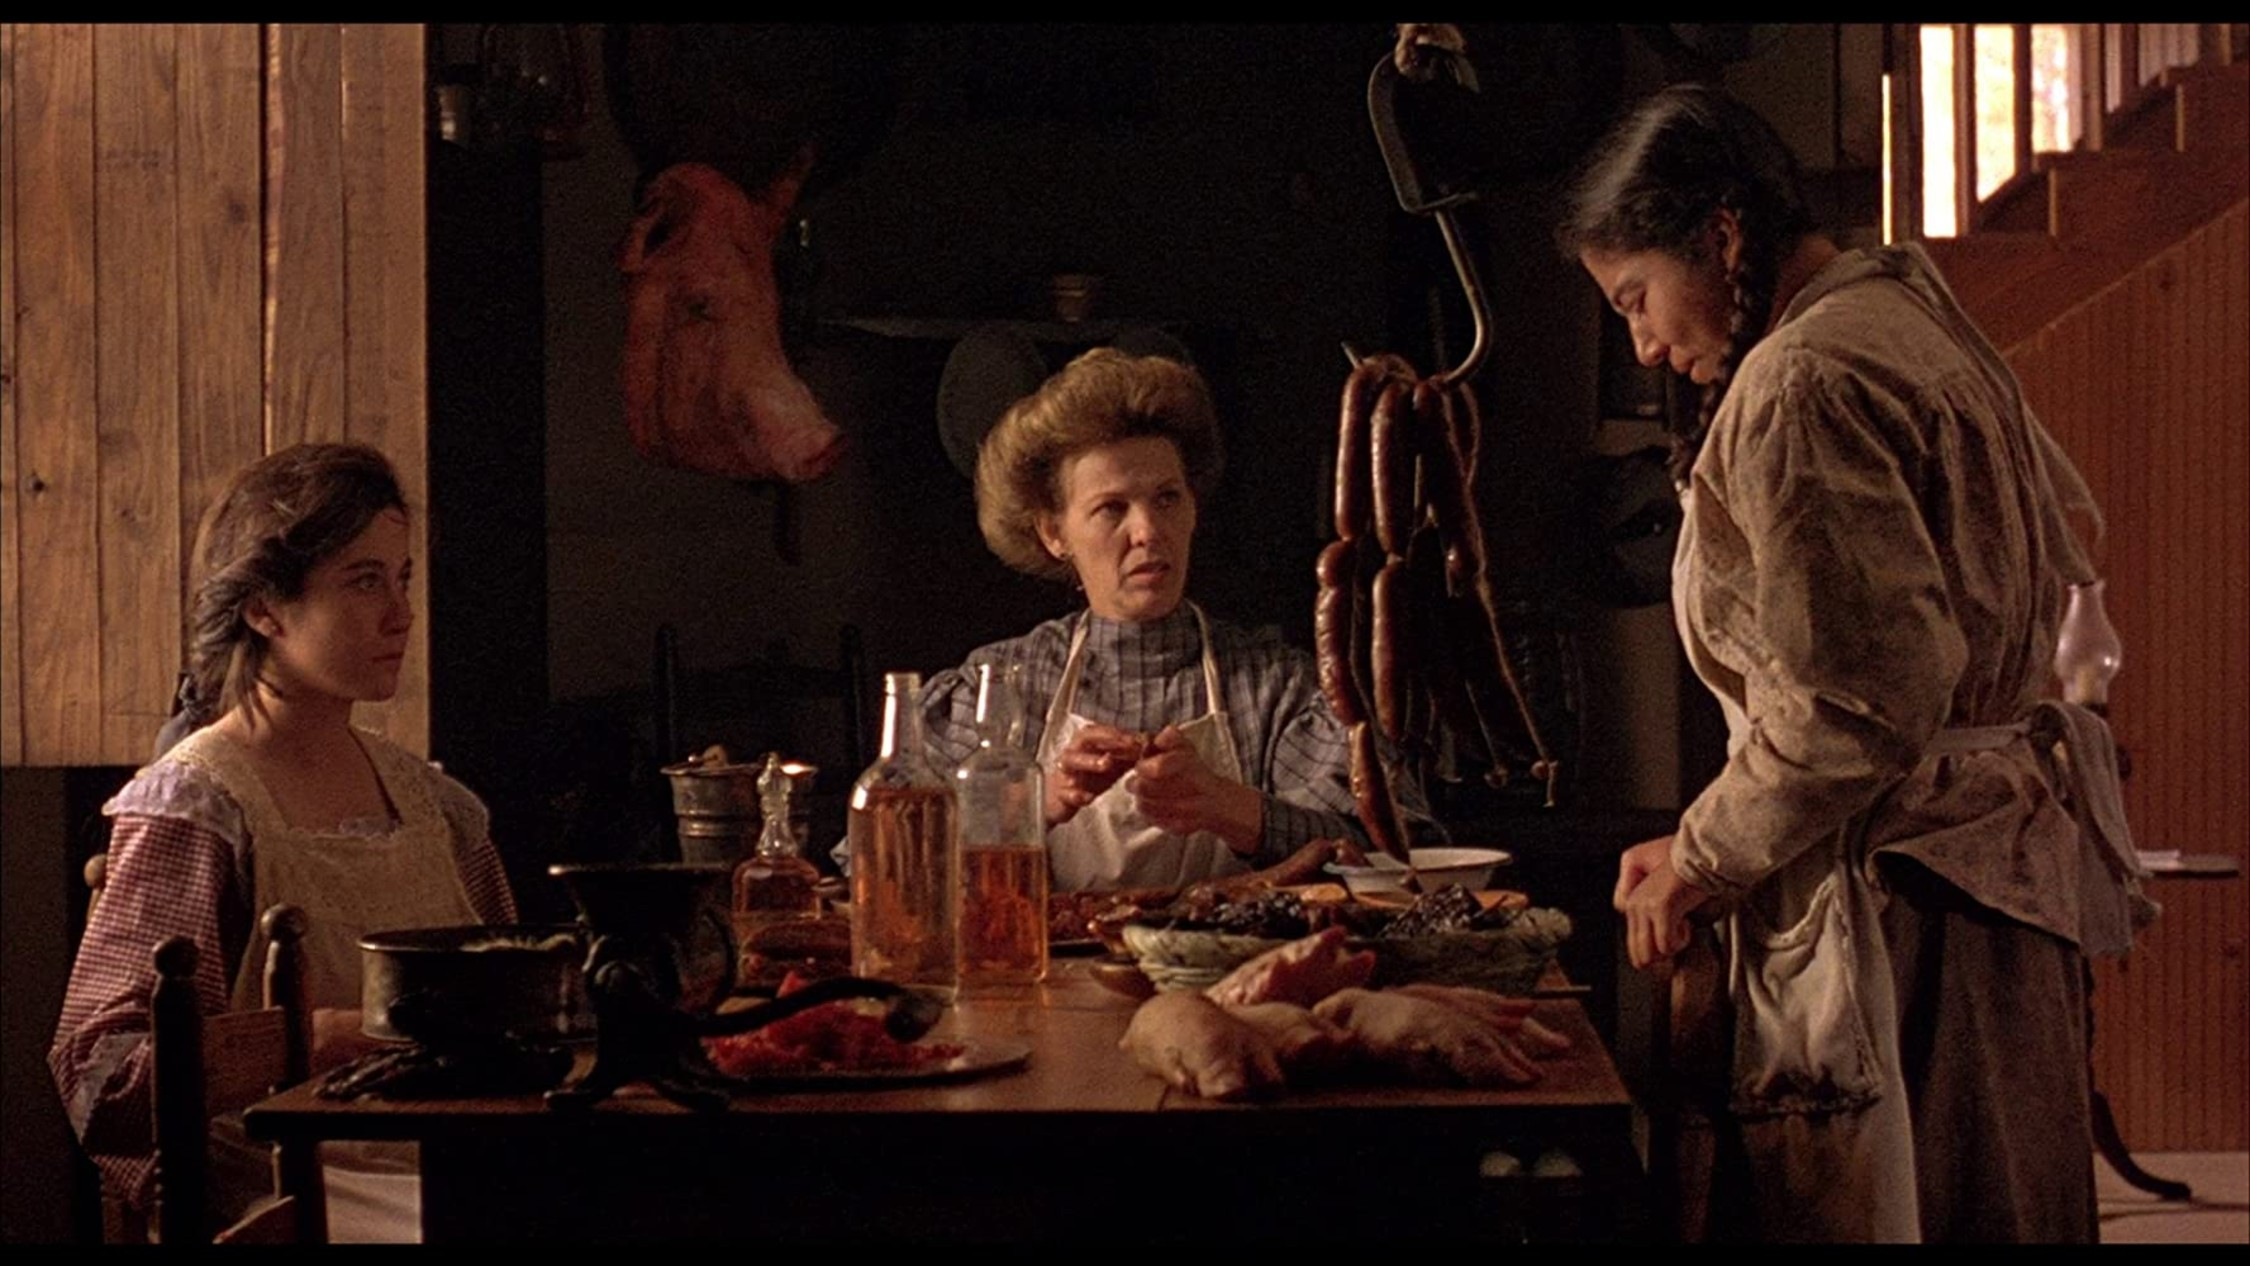 Three women at a table